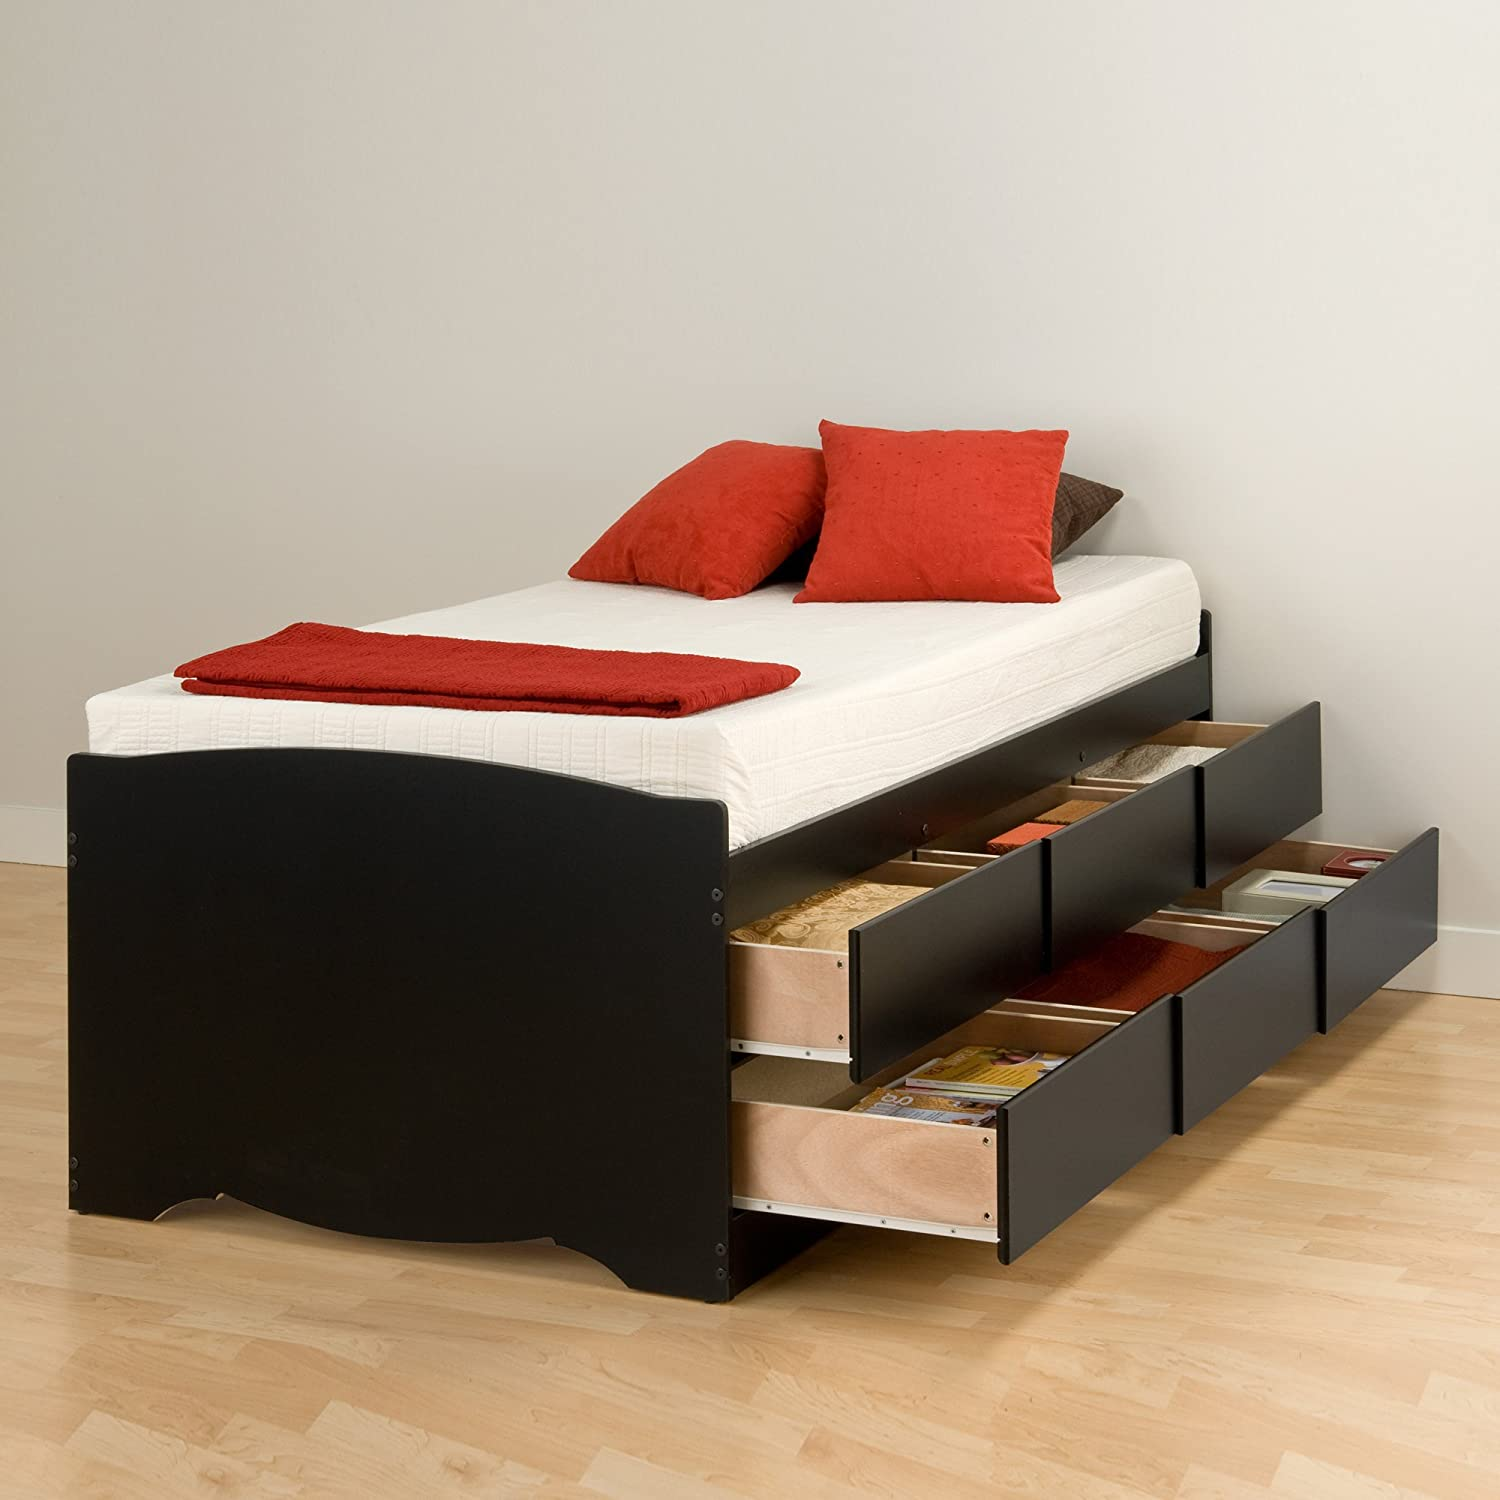 top 7 best captains bed frame with storage under 200 to 500 best7reviews. Black Bedroom Furniture Sets. Home Design Ideas